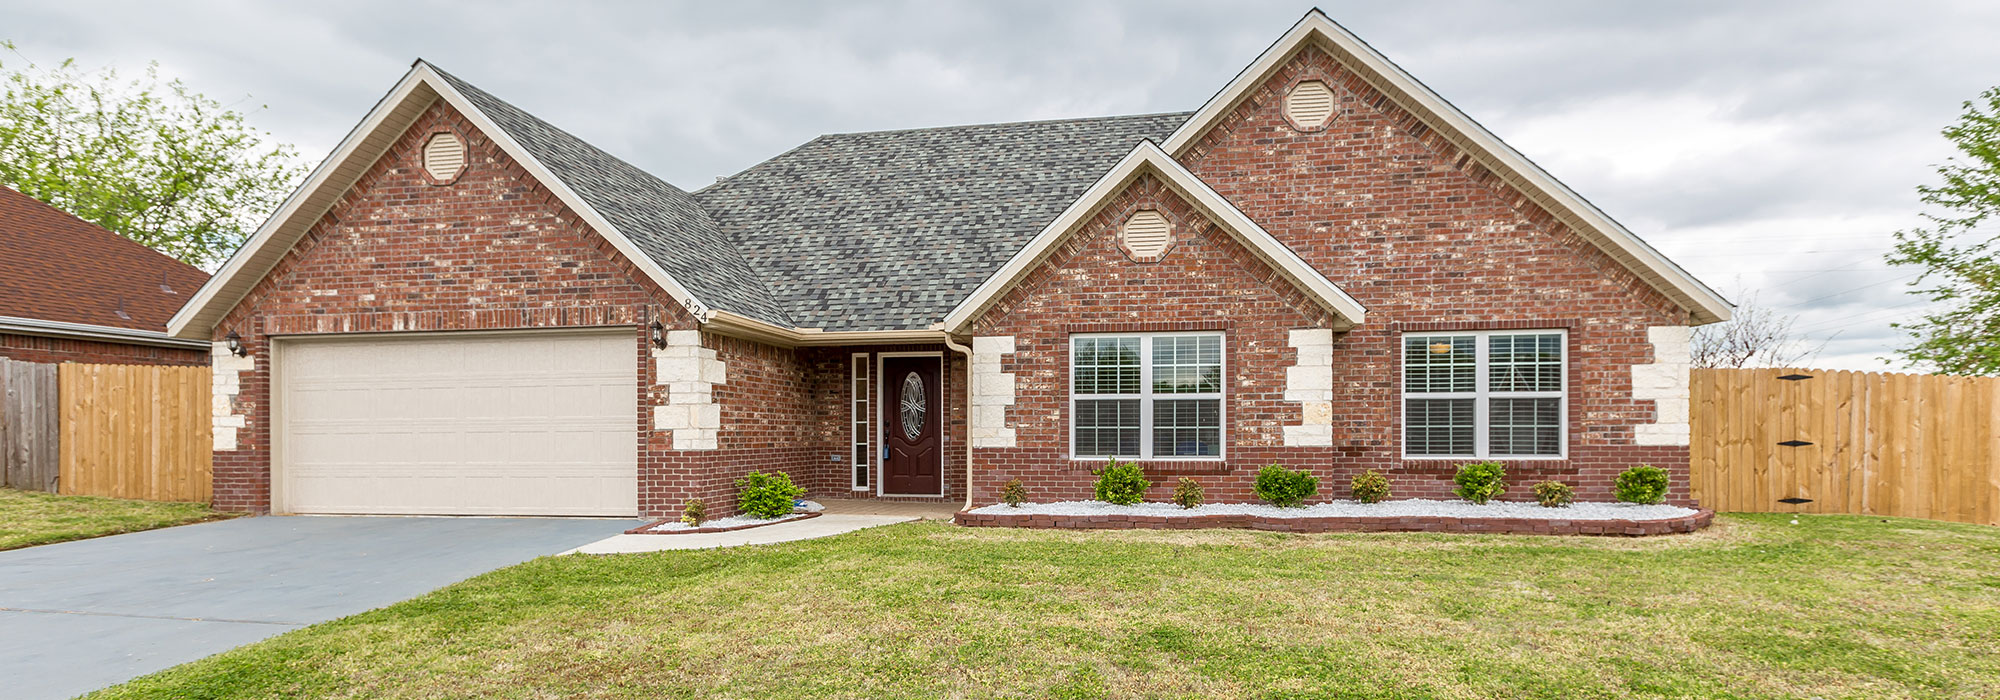 824 Colley St, Lowell, AR